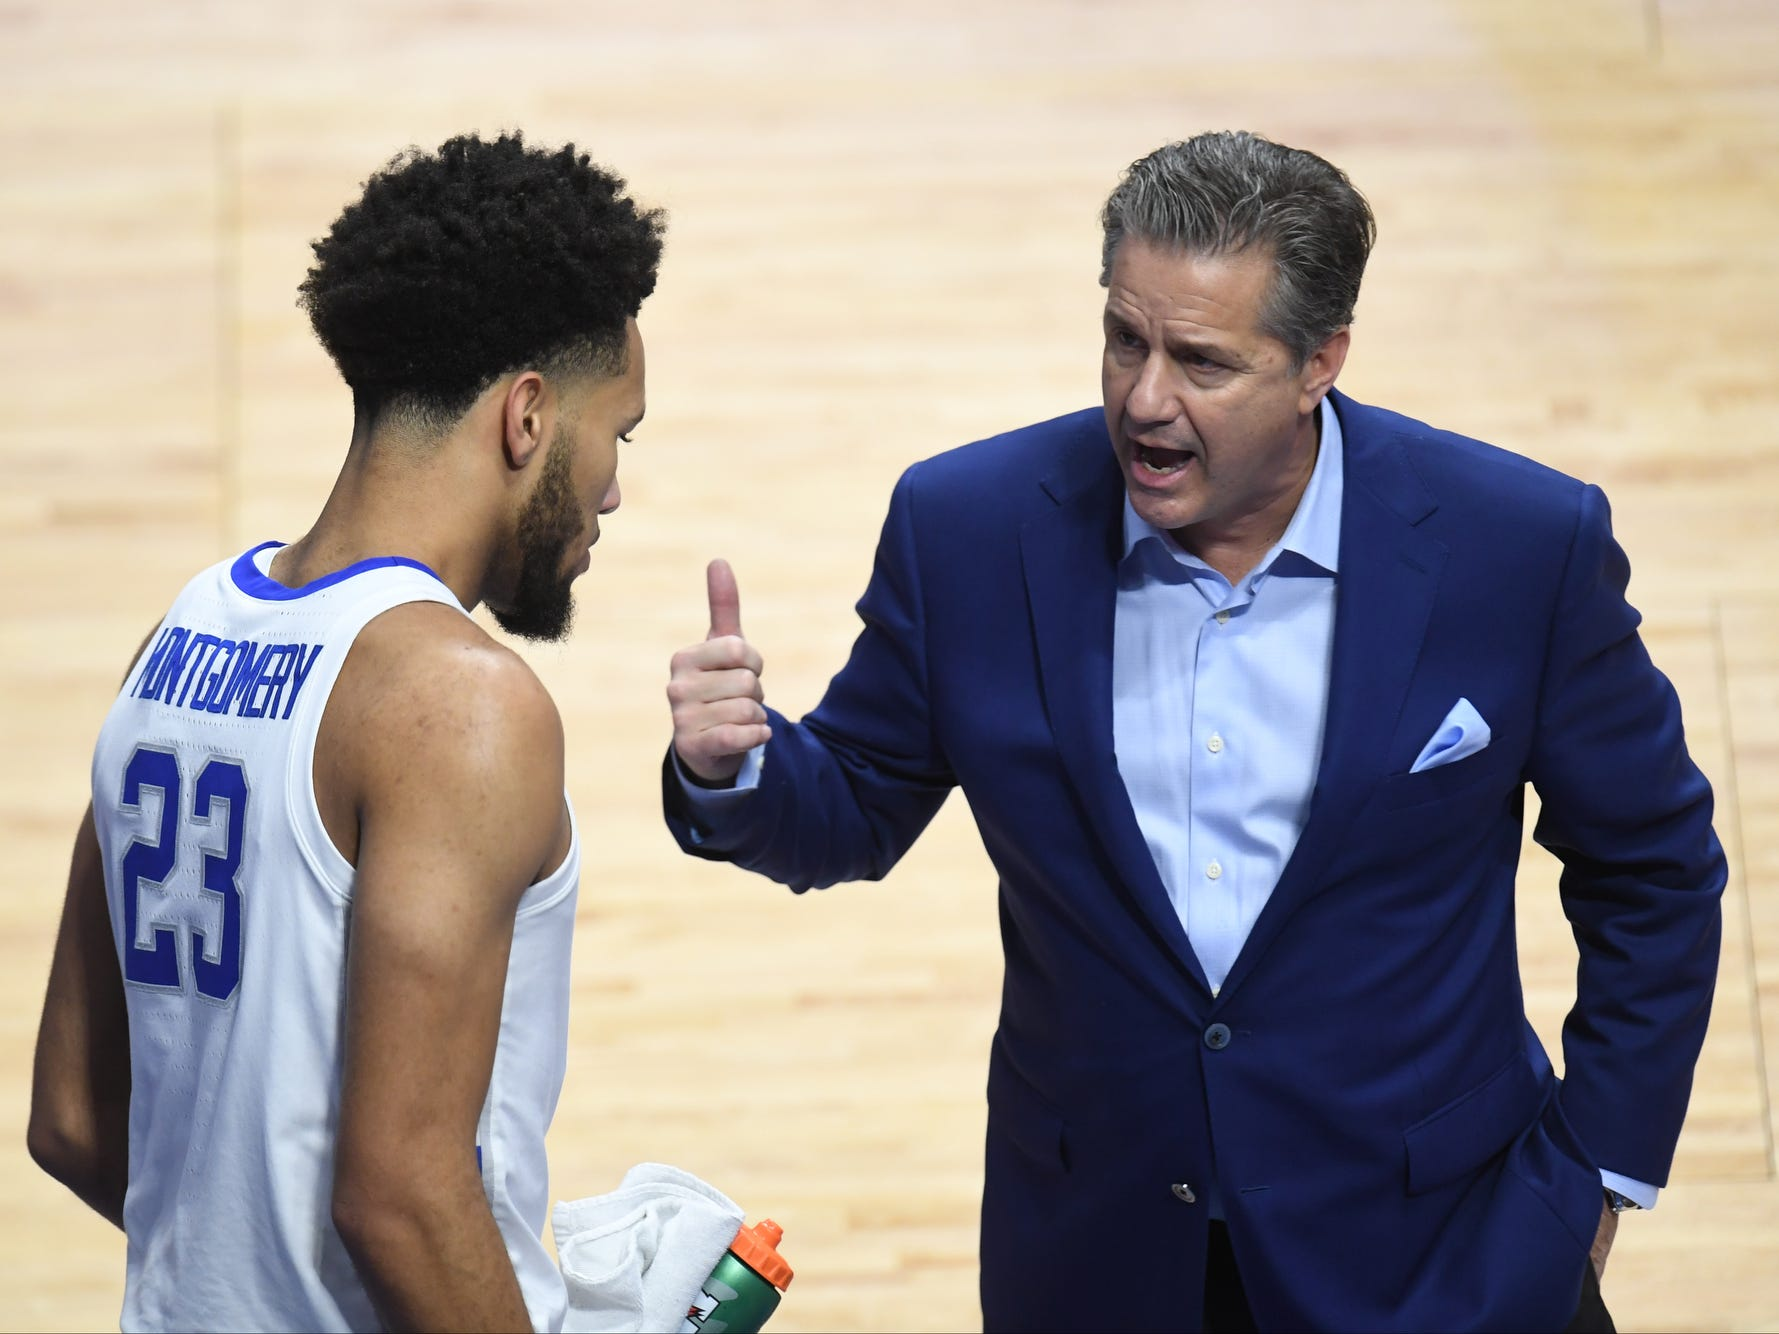 UK F EJ Montgomery listens to head coach John Calipari during the University of Kentucky men's basketball game against UNC Greensboro at Rupp Arena in Lexington, Kentucky on Saturday, December 1, 2018.